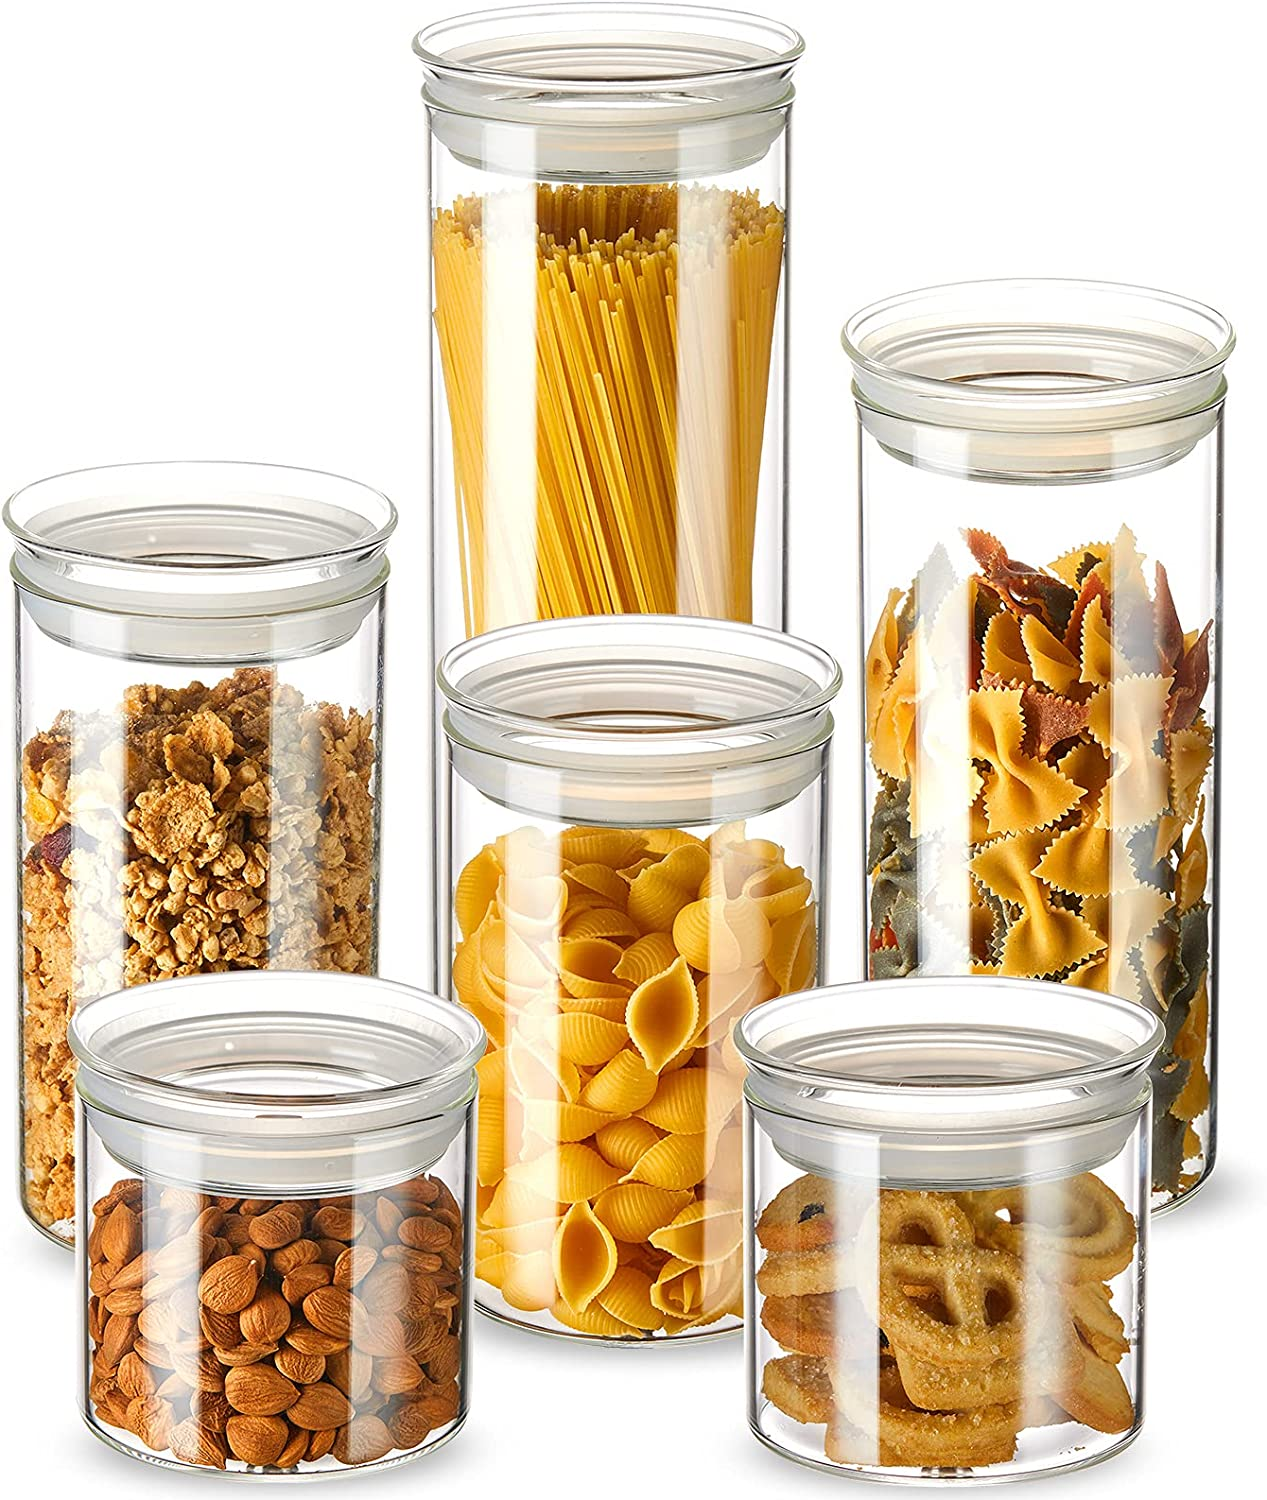 ZENS Glass Canisters Set, Airtight Kitchen Storage Jars with Glass Lids, 6 Pack Clear Cylinder Food Containers with Sealed Silicone Ring for Pasta or Snacks(17oz/32oz/40oz/50oz/65.5oz)